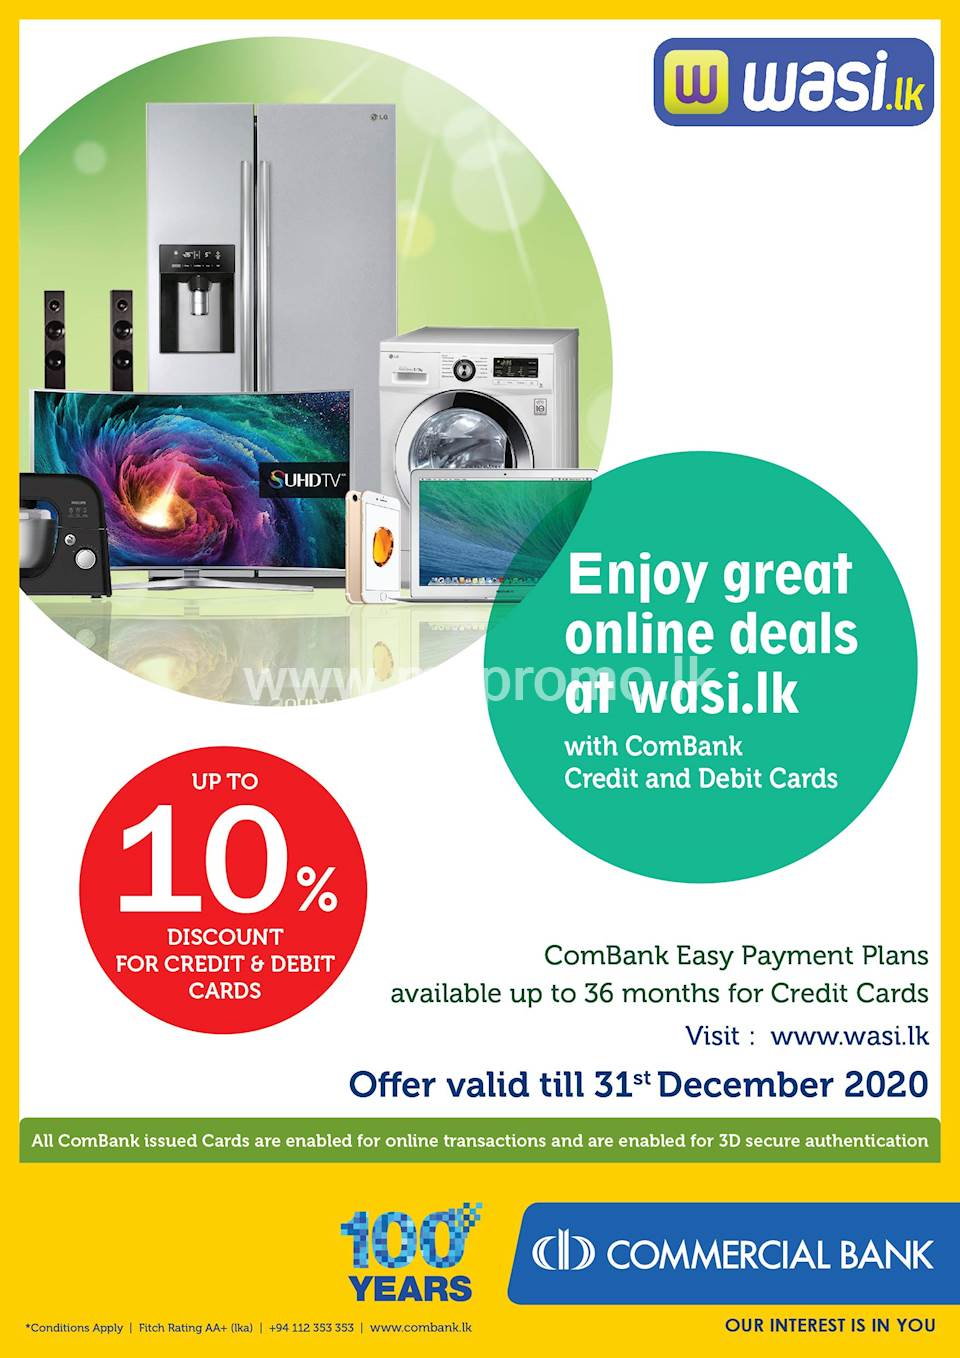 Enjoy Up to 10% Discount at wasi.lk with ComBank Credit and Debit Cards.